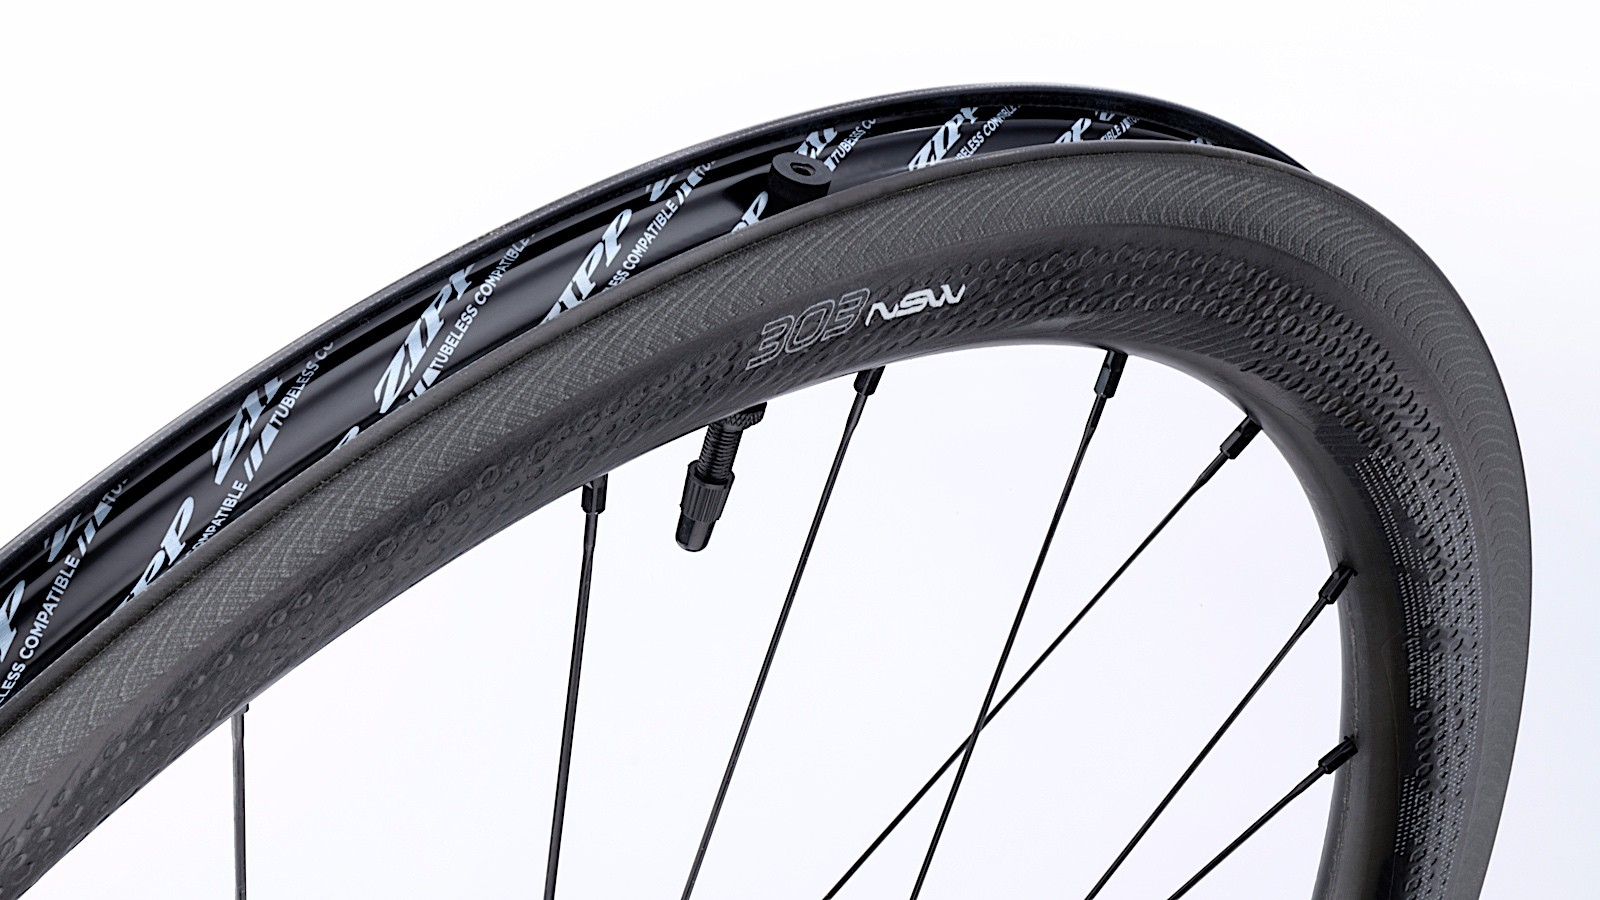 The new NSW wheels have a 19mm internal width, and are ready for tubeless